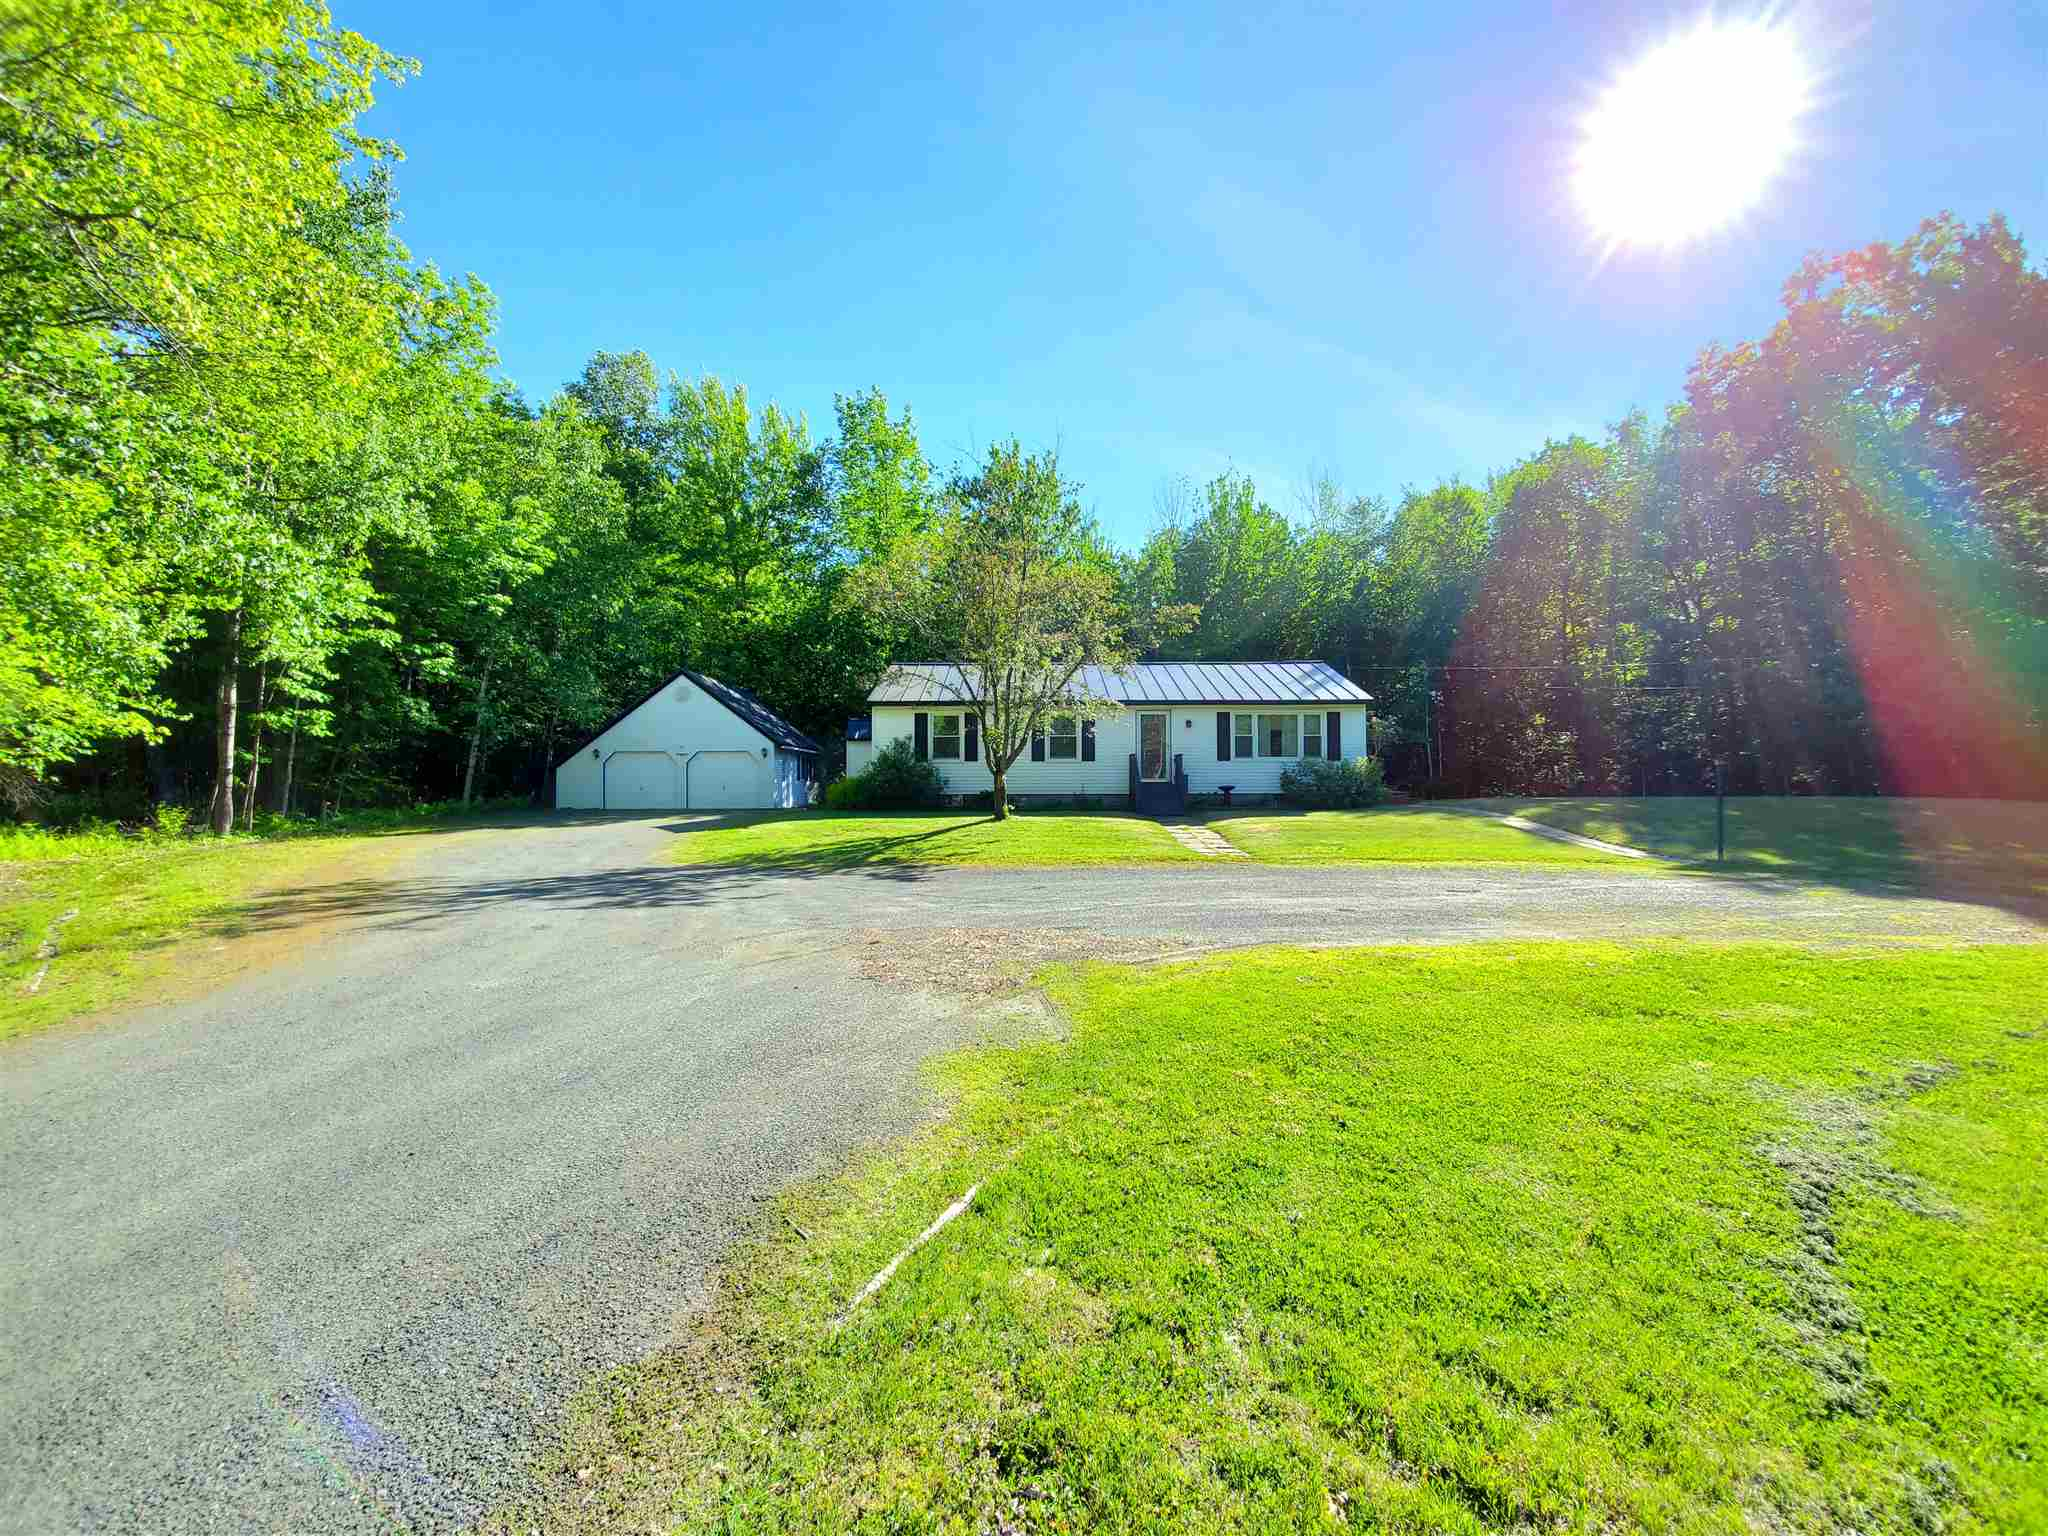 MLS 4809955: 210 Lockehaven Road, Enfield NH